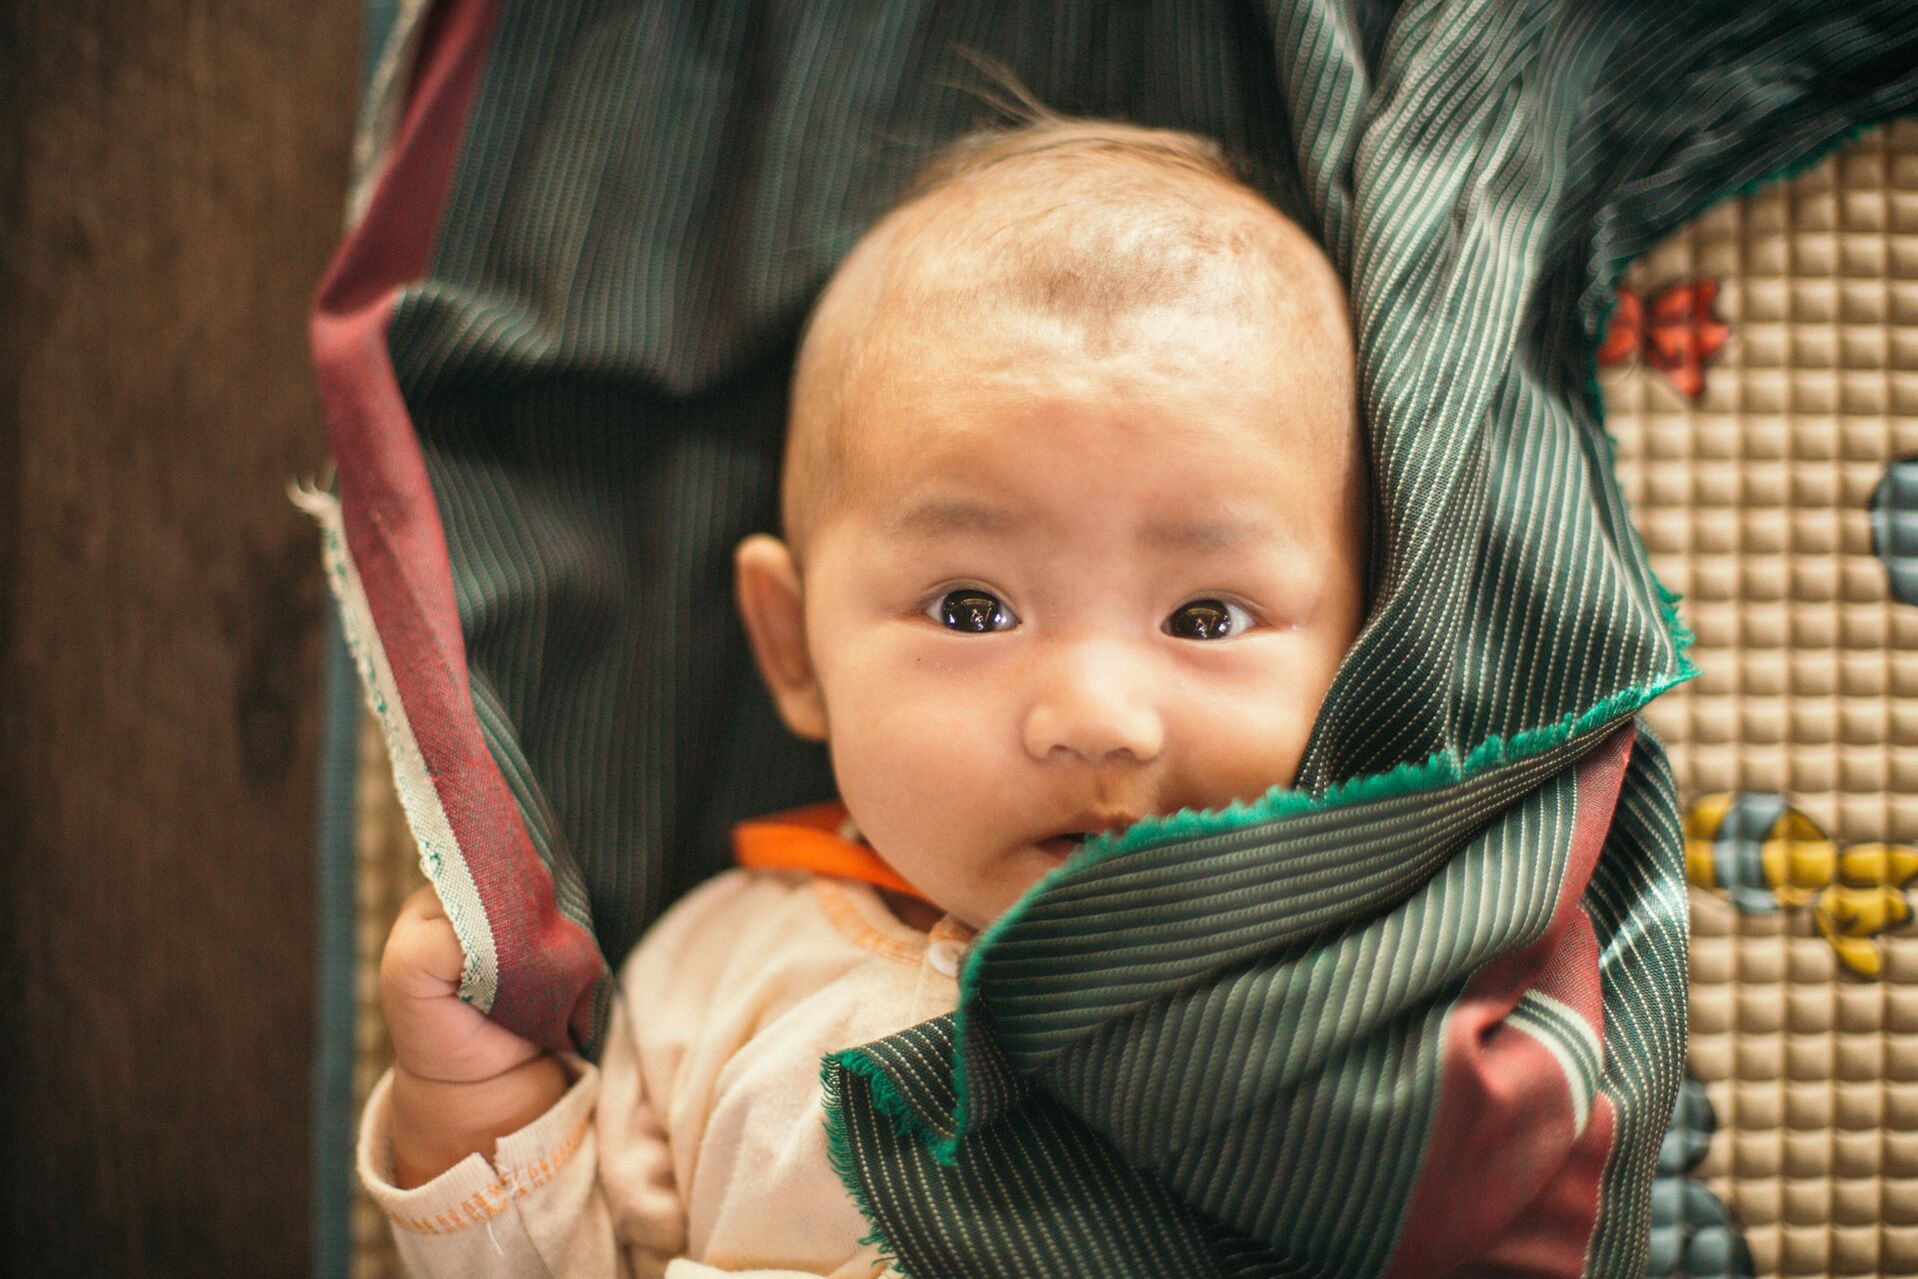 A close up of baby wrapped in a green and red blanket.